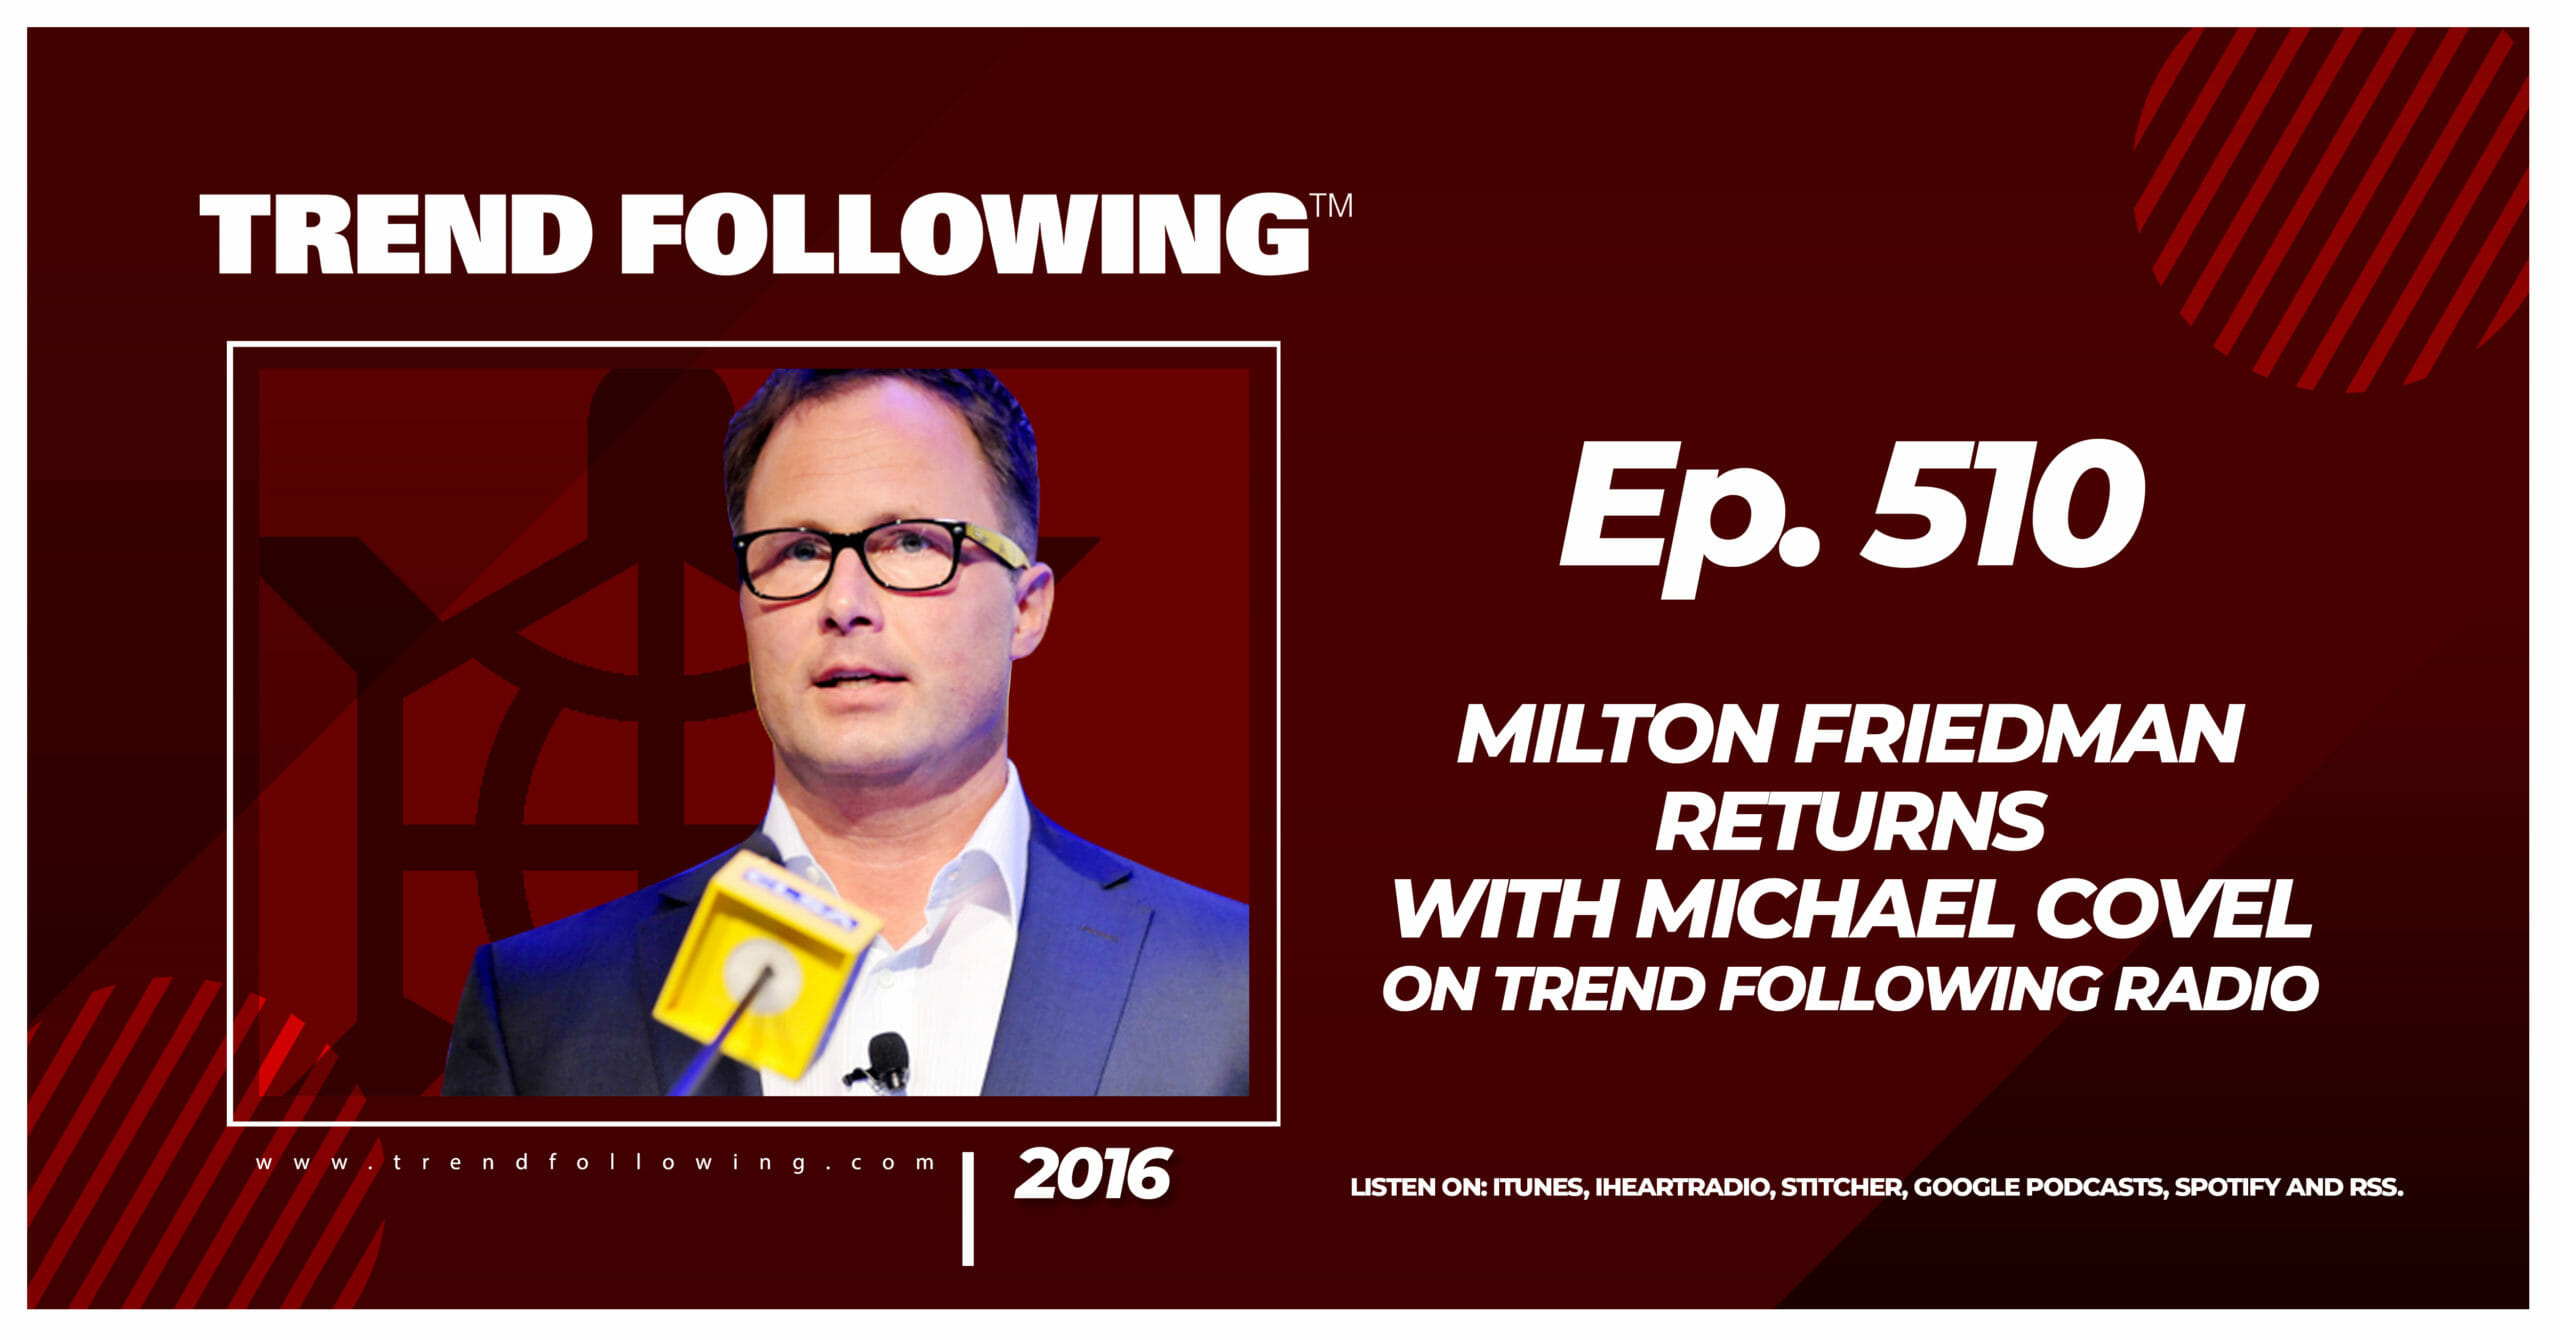 Milton Friedman Returns with Michael Covel on Trend Following Radio